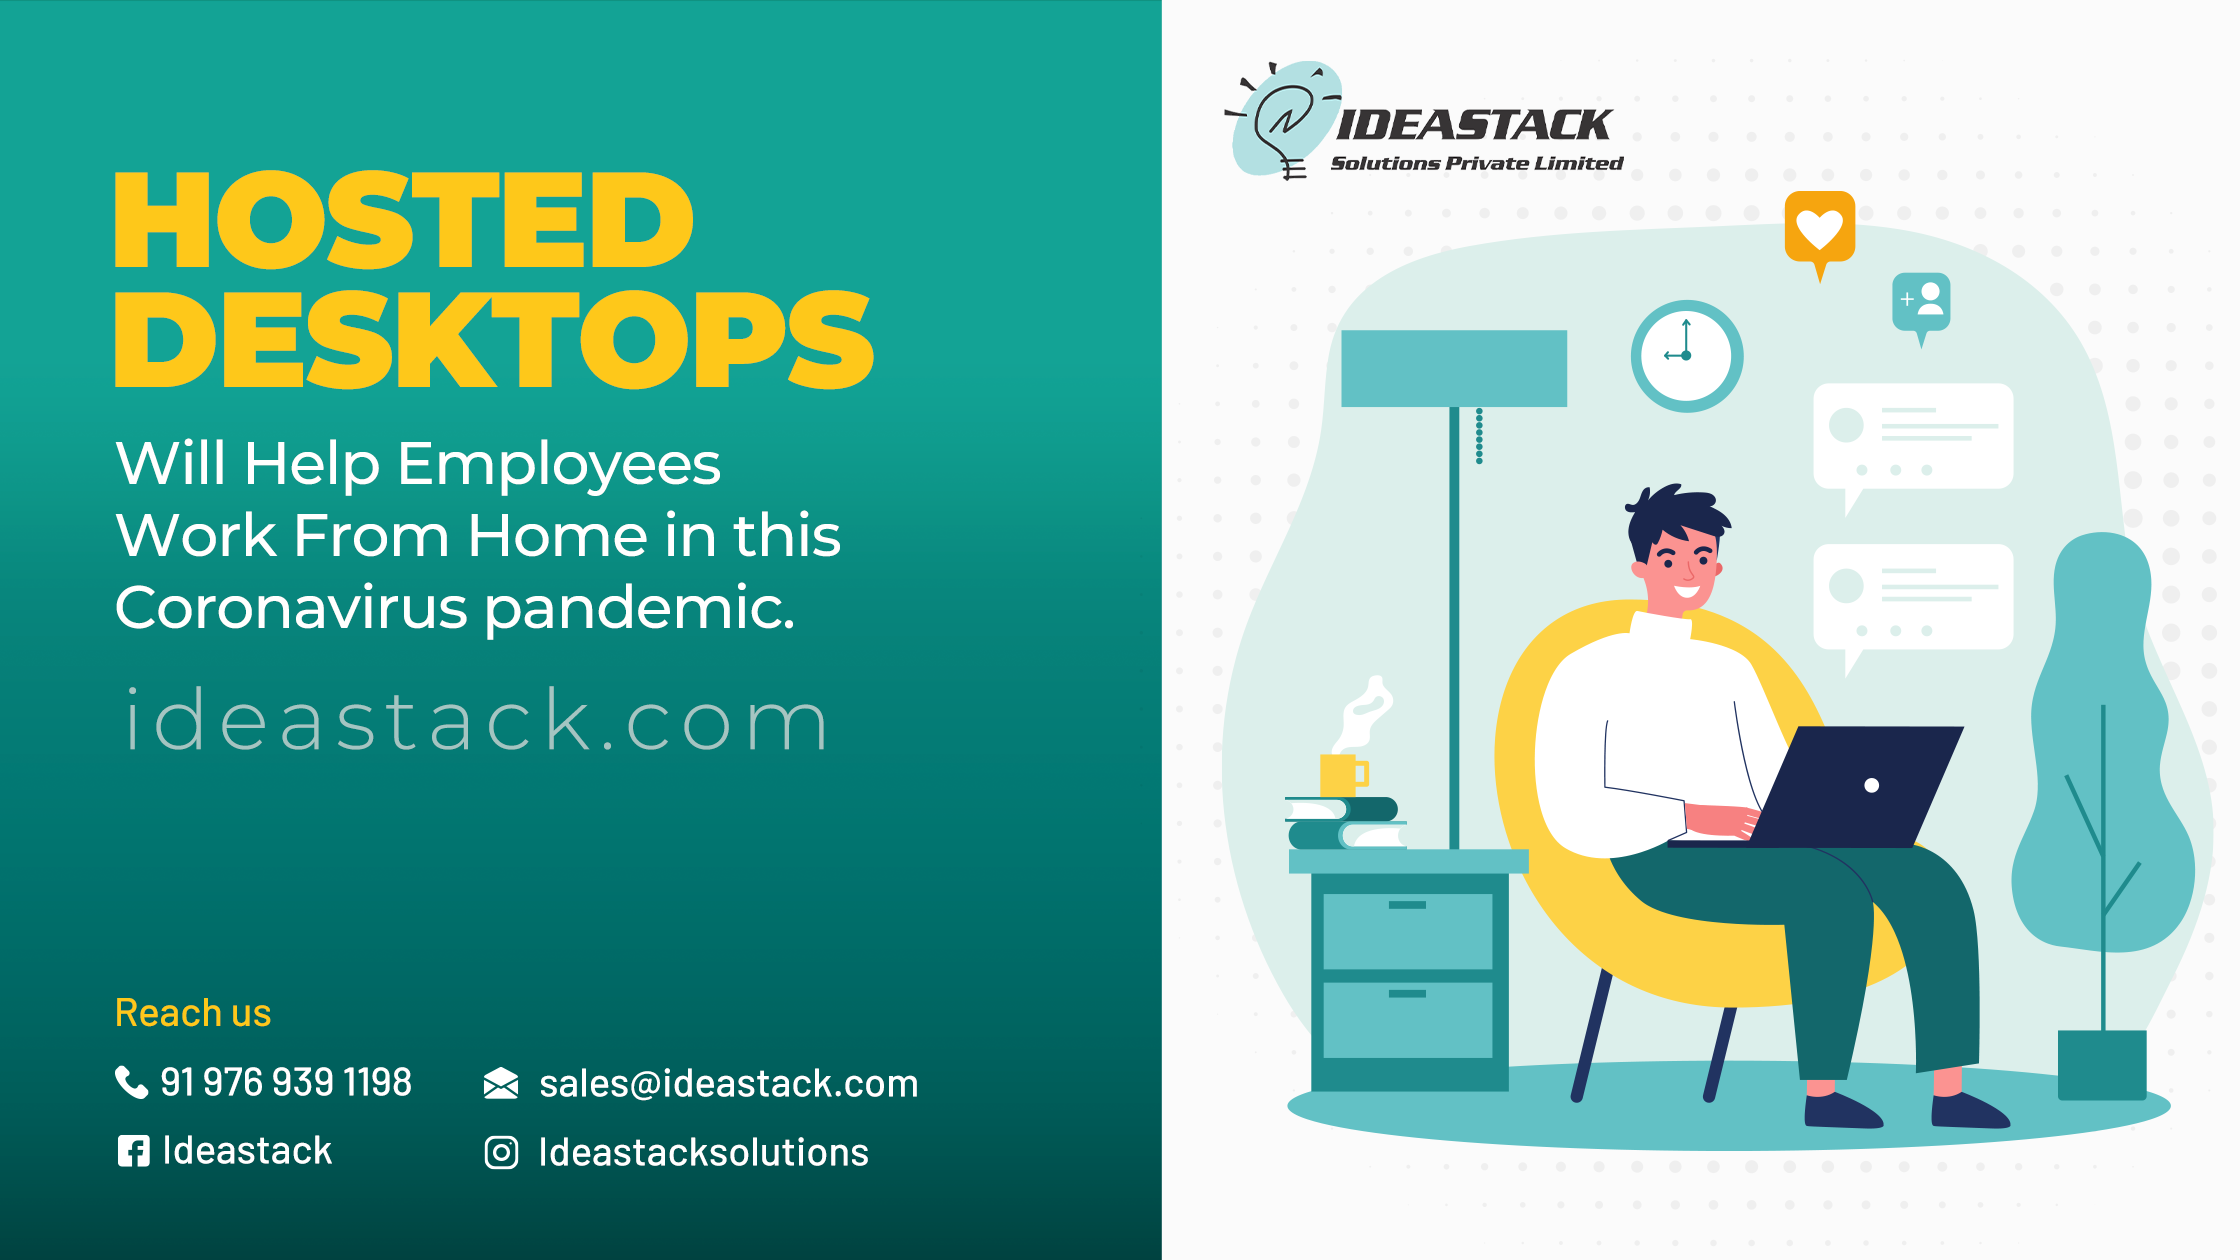 Hosted Desktops Will Help Employees Work From Home In This Coronavirus Pandemic